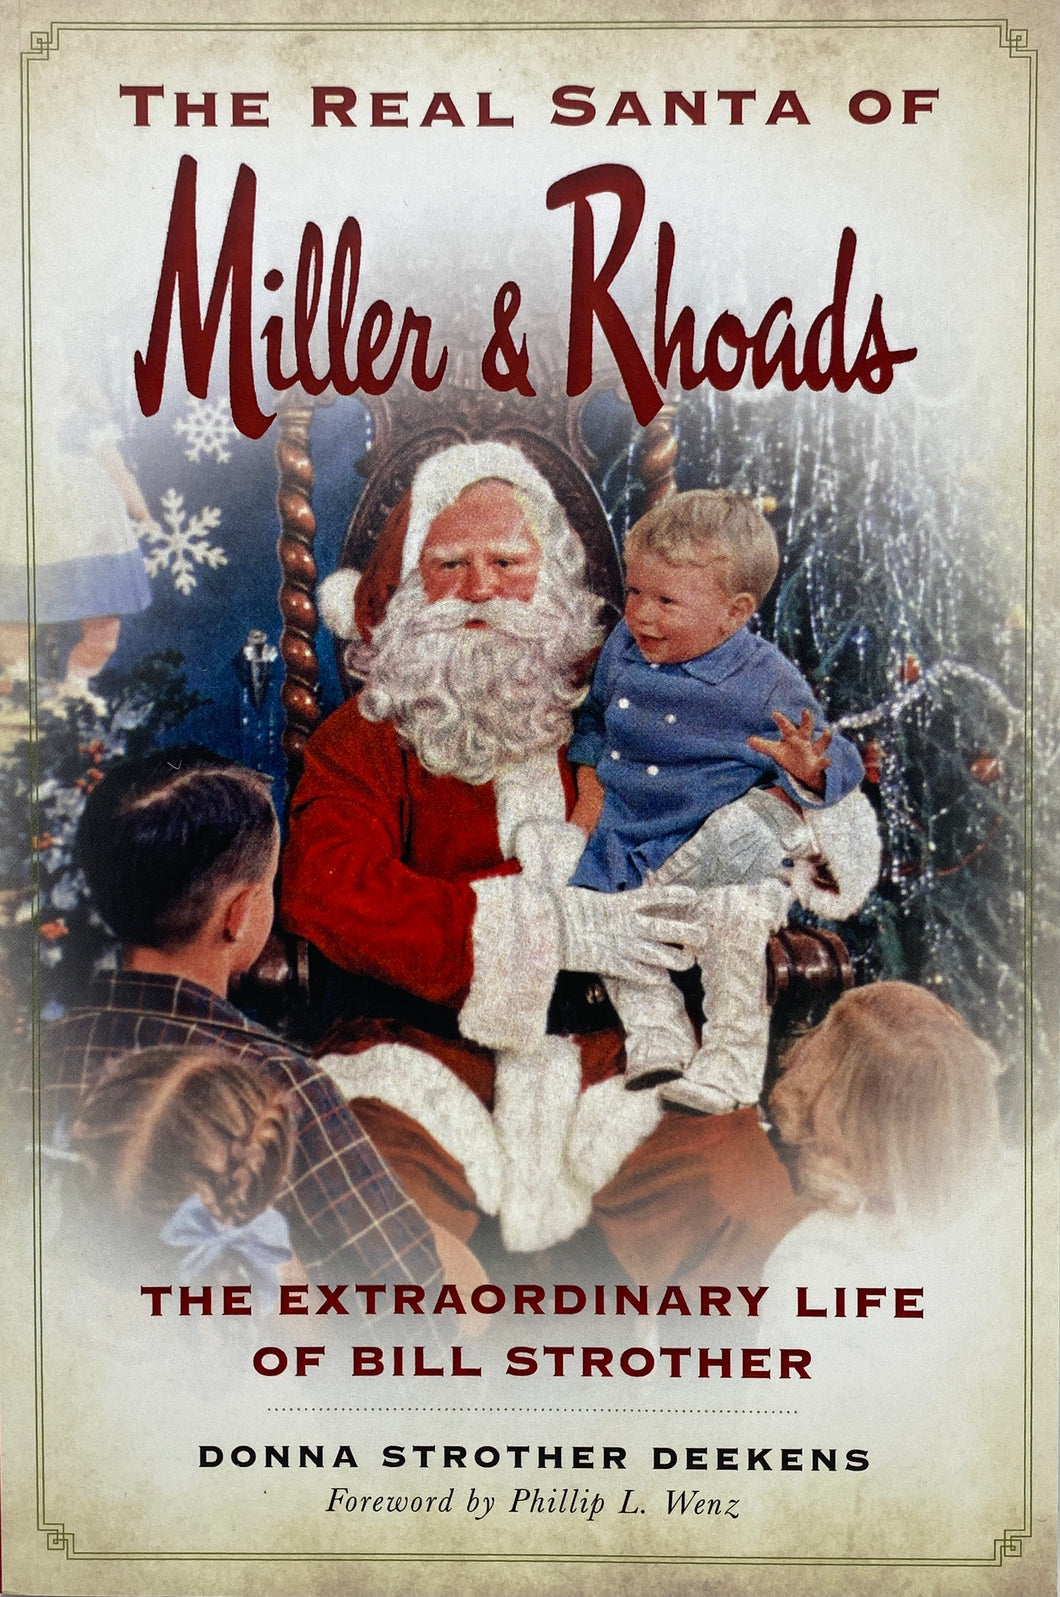 The Real Santa of Miller & Rhoads: The Extraordinary Life of Bill Strother by Donna Strother Deekens